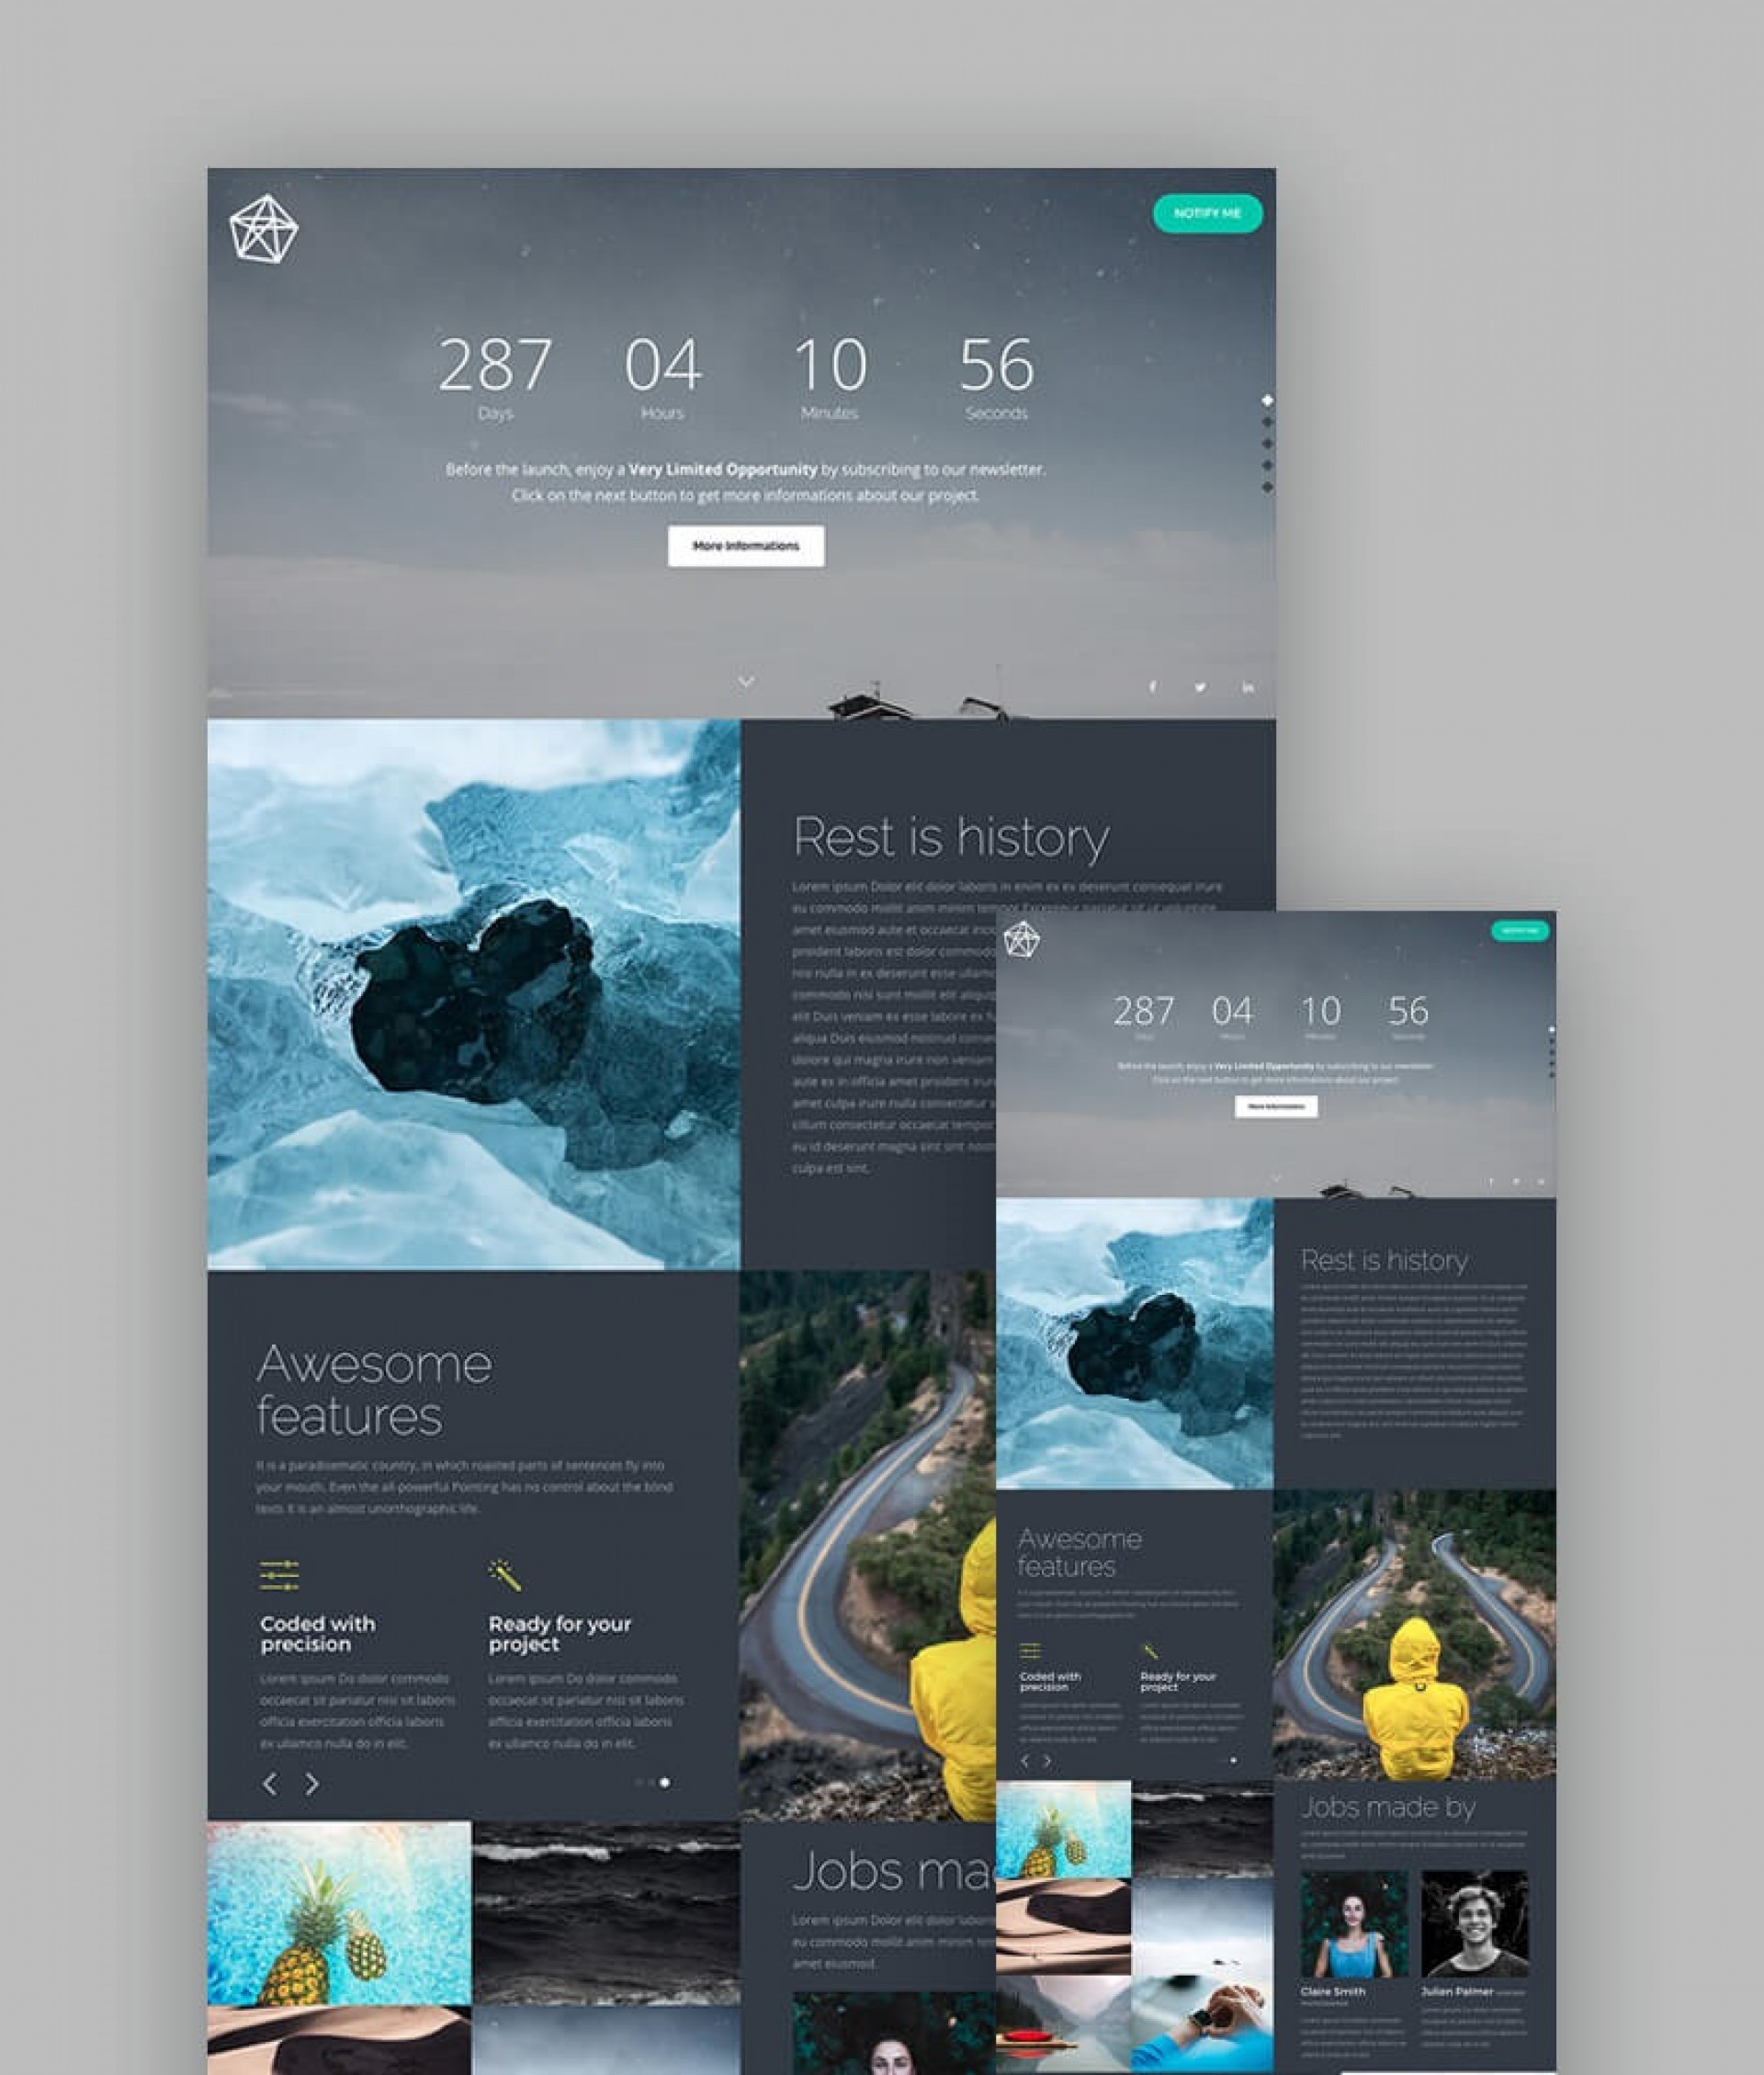 007 Unusual Responsive Landing Page Template Inspiration  Free Html With Flexbox Html51920